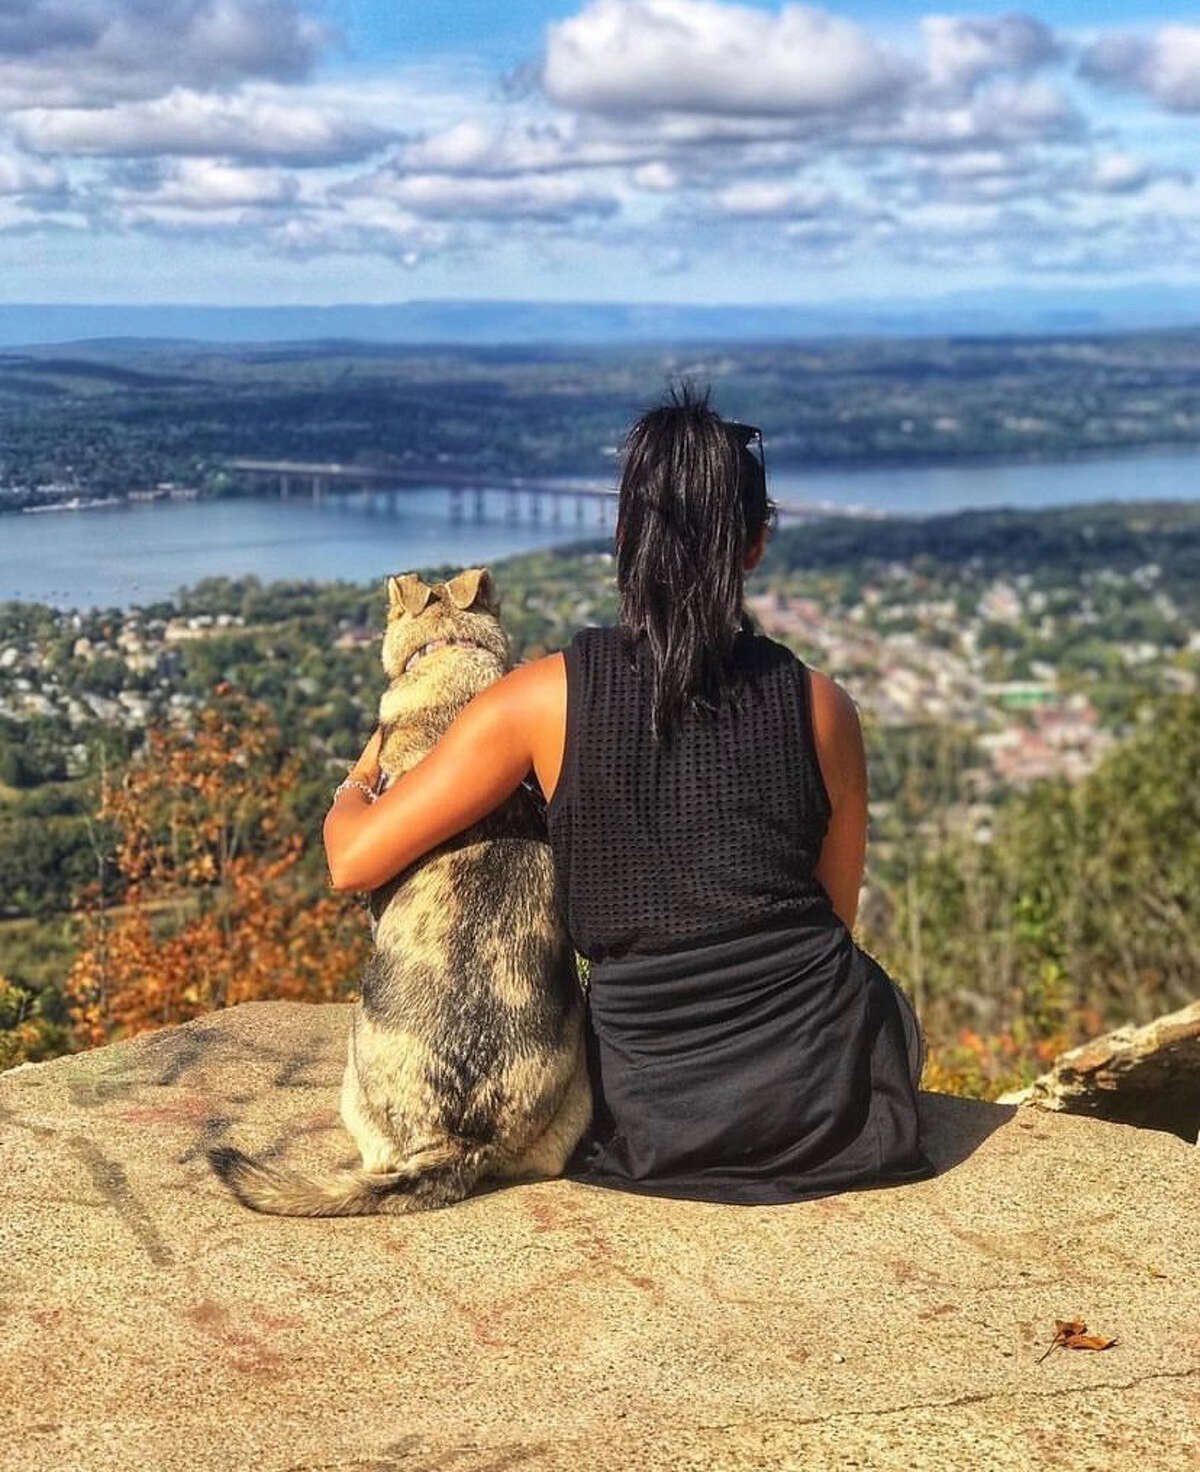 A climb up Mount Beacon gives a bird's eye view of the Hudson River and Newburgh.